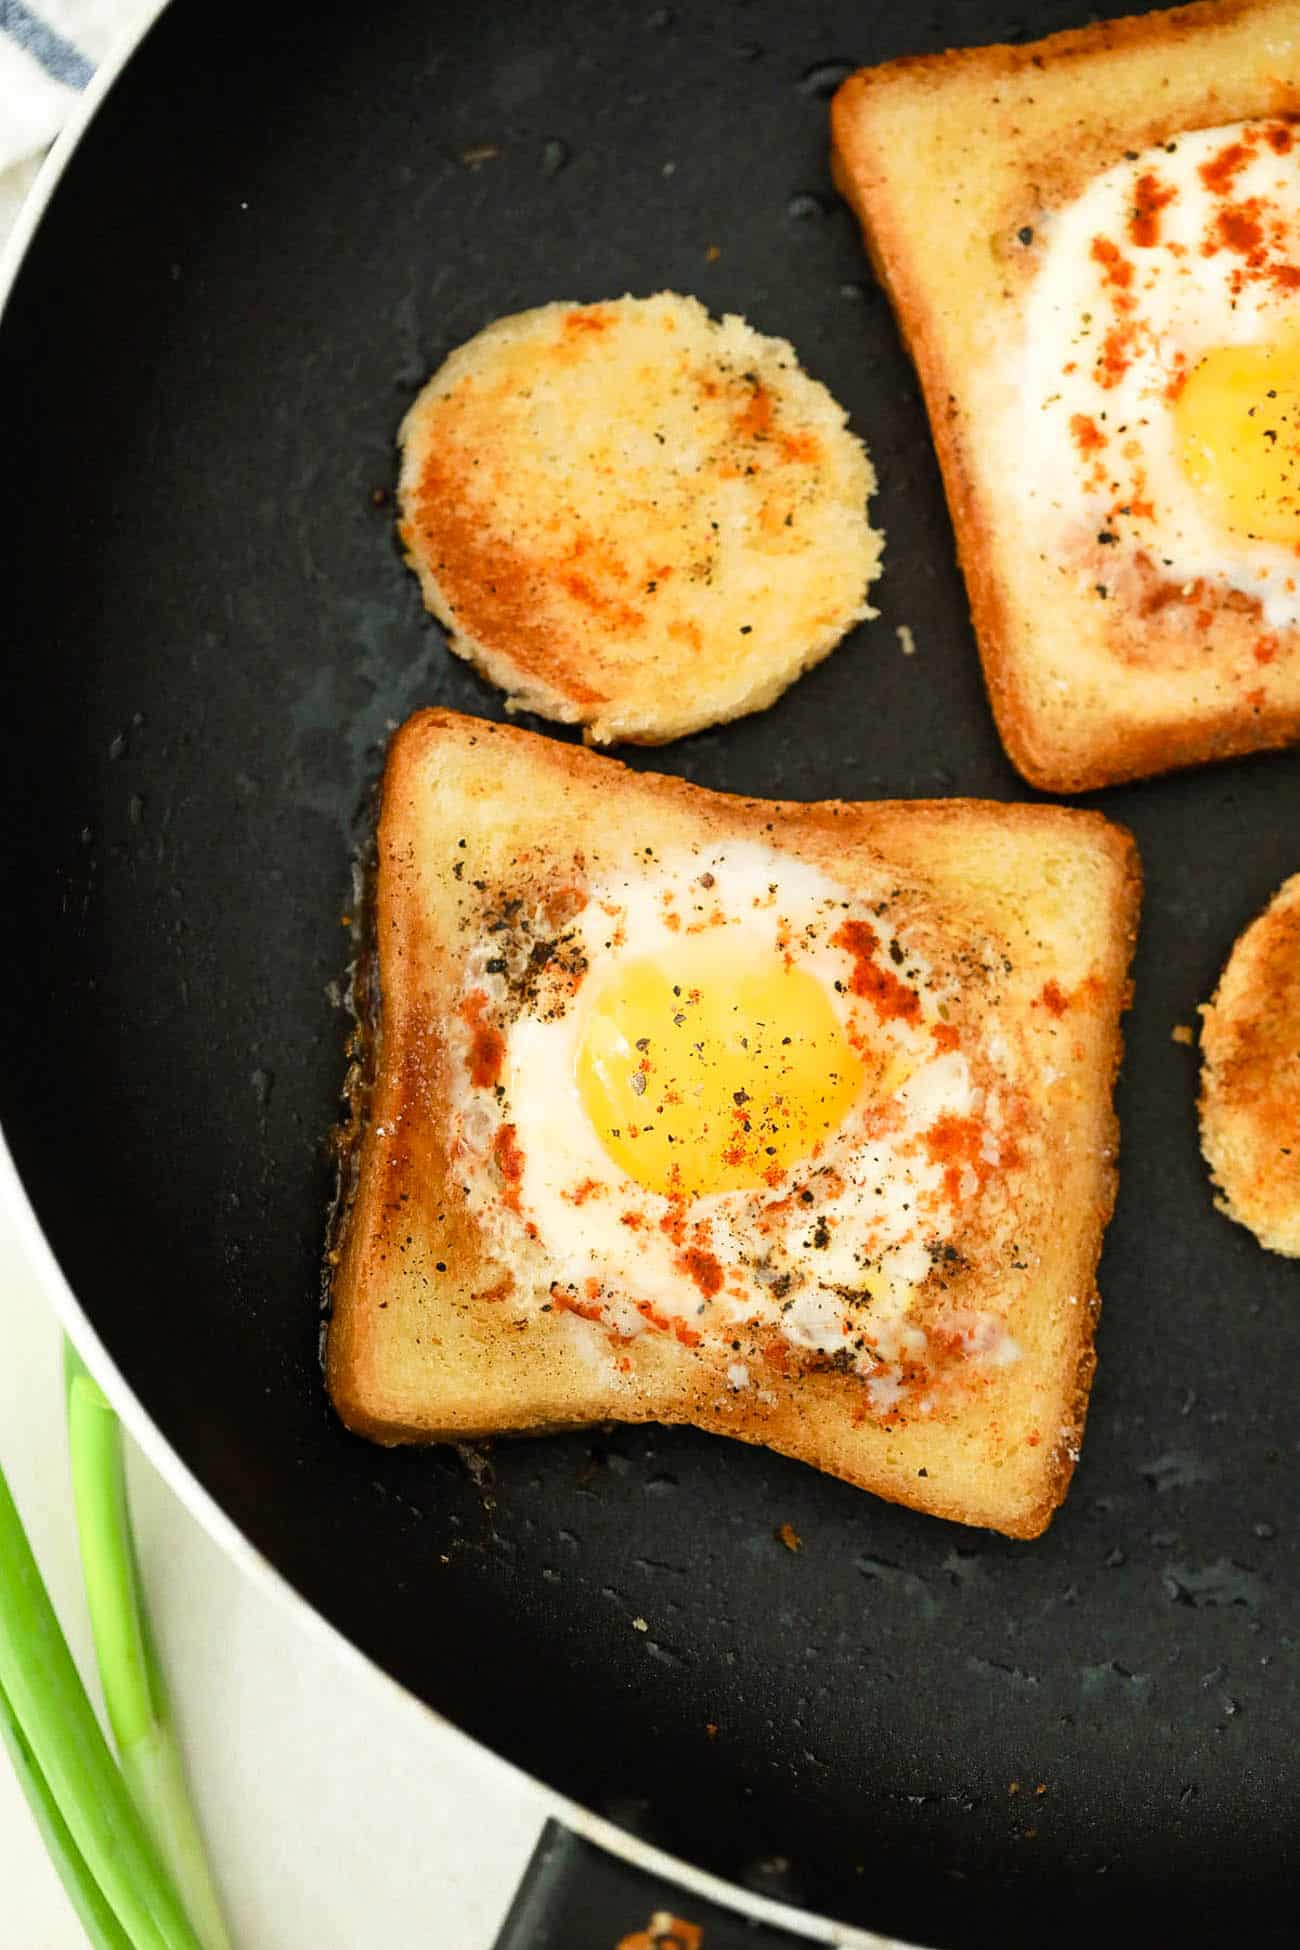 eggs in a basket still cooking in a skillet